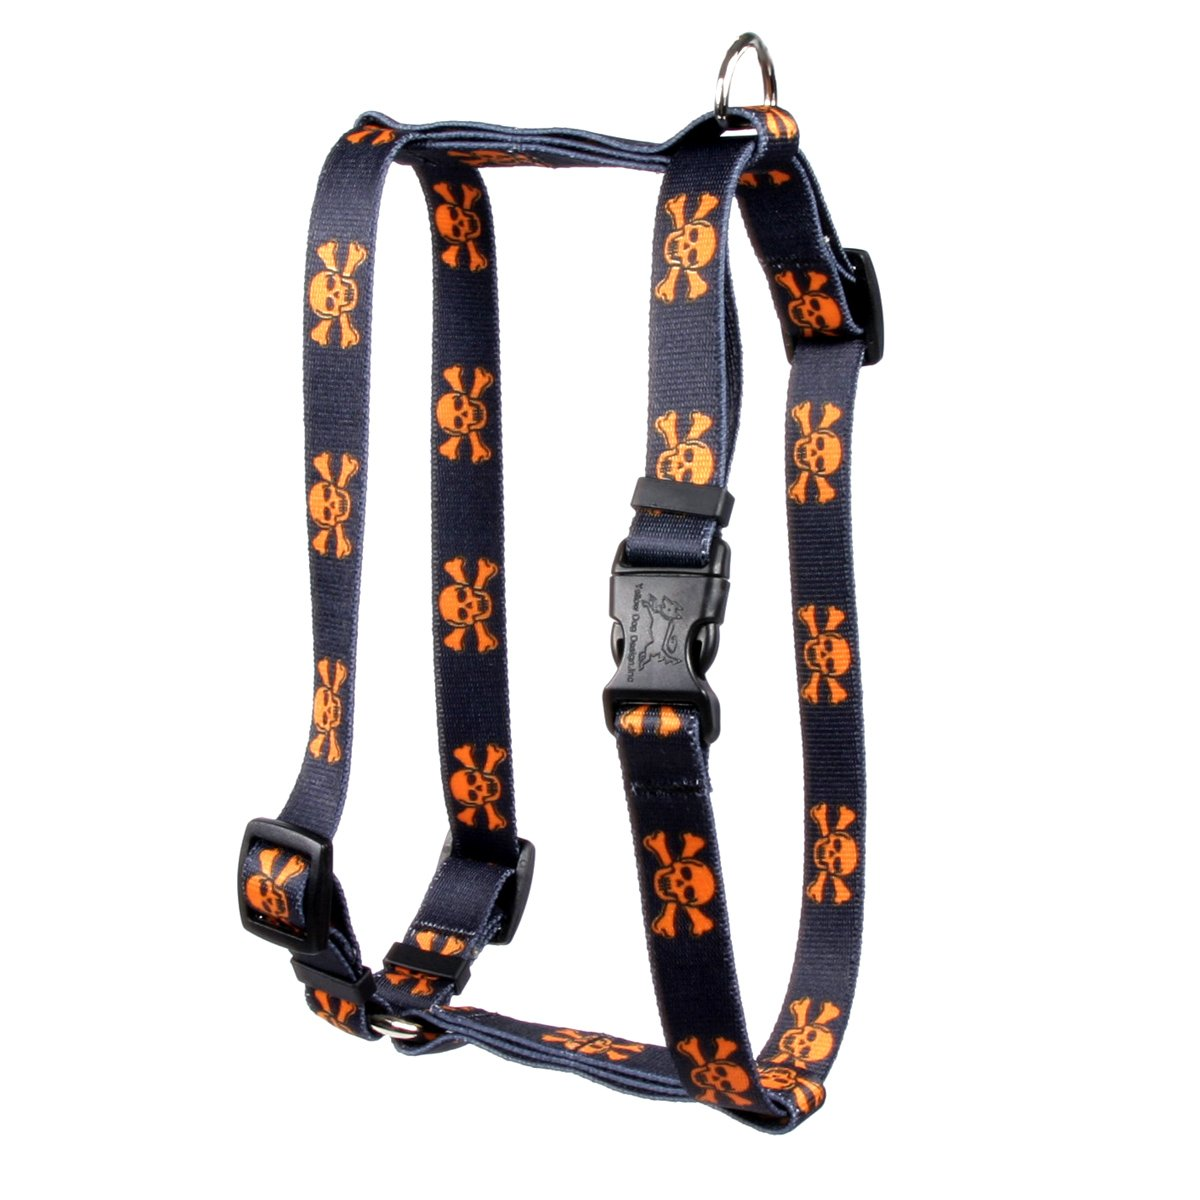 Yellow Dog Design Orange Black Skulls Roman Style H Dog Harness, X-Large-1'' Wide fits Chest of 28 to 36''